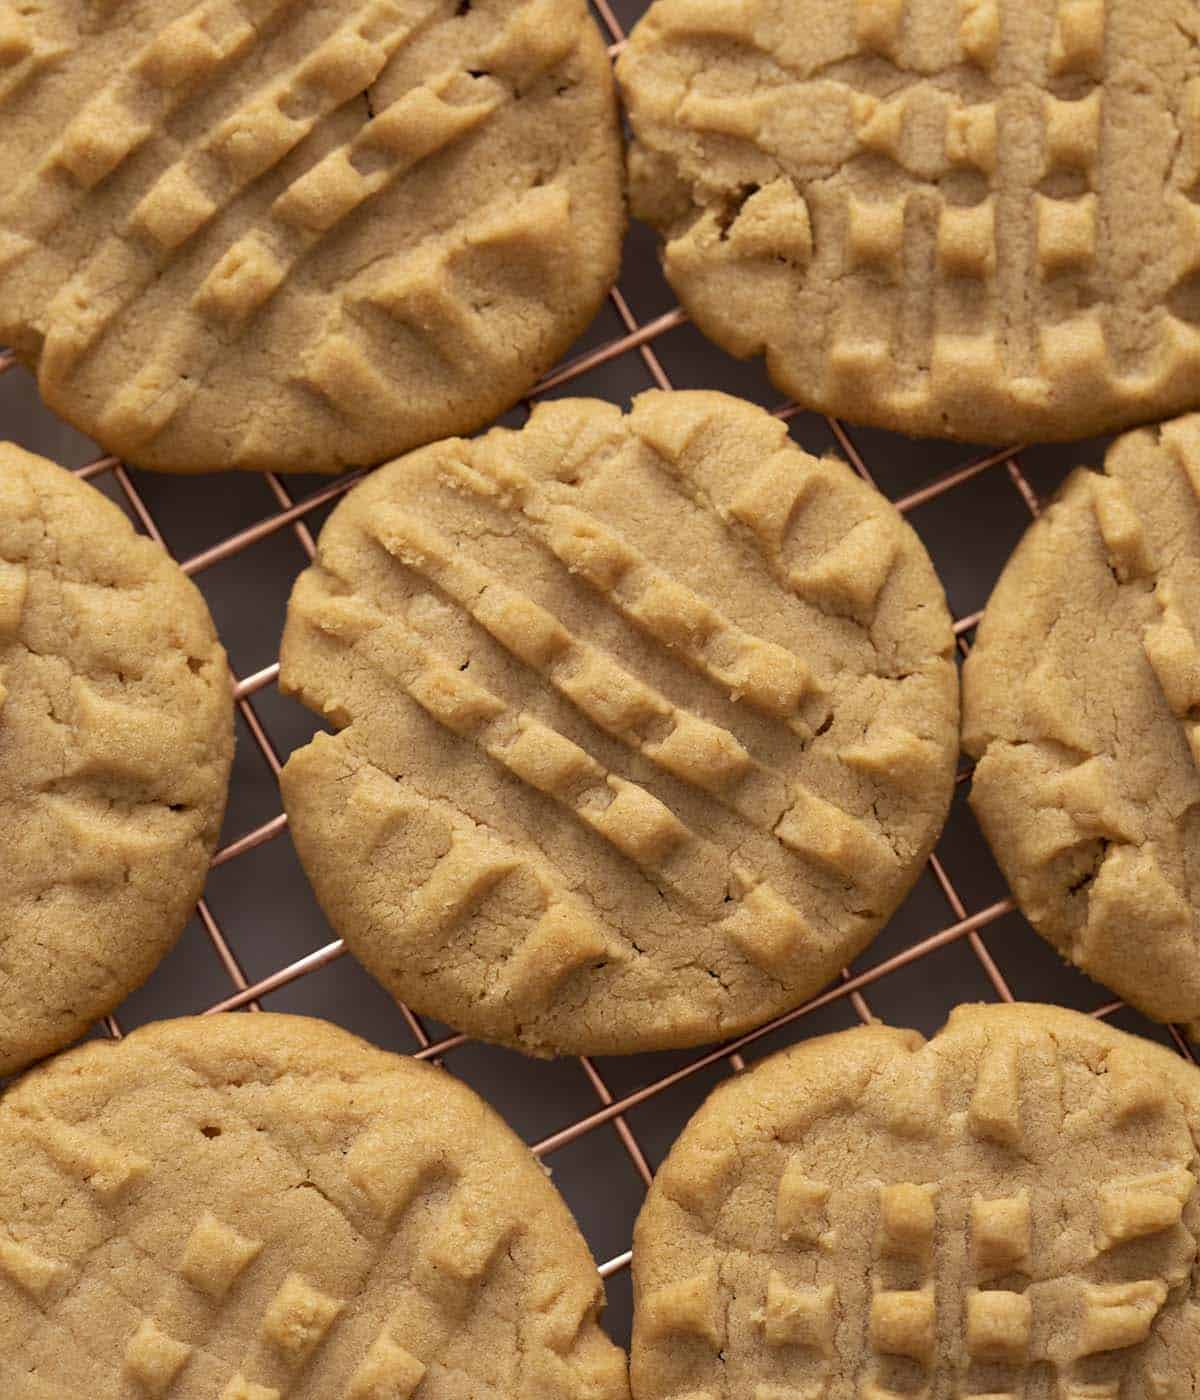 Peanut Butter Cookies cooling on a wire rack.